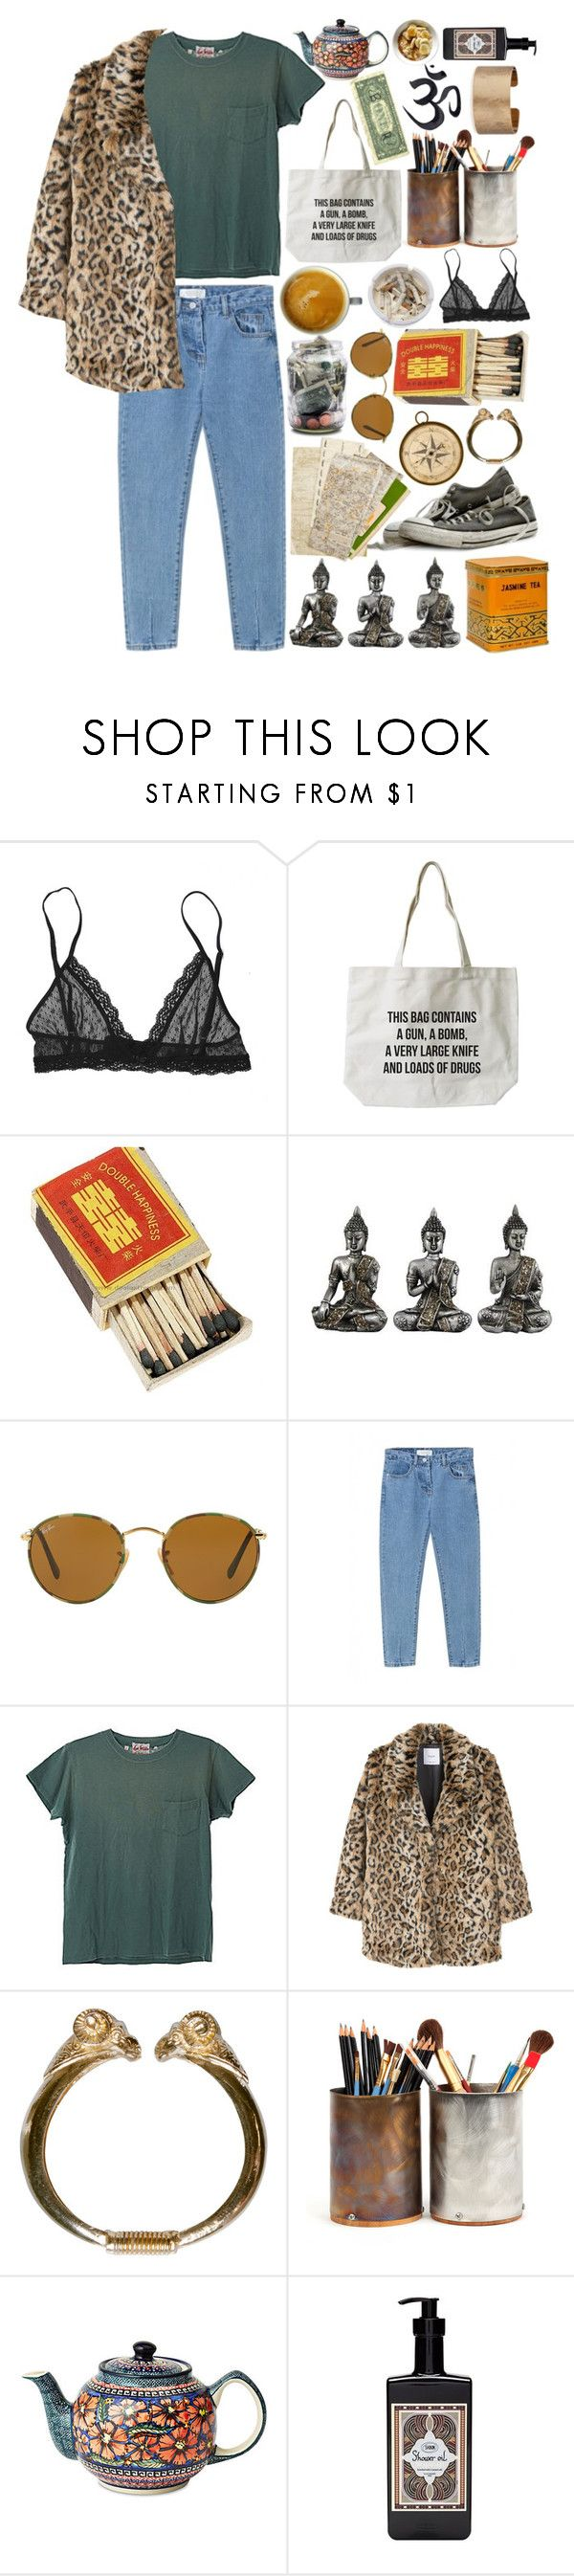 """""""#16 Wild Panther"""" by miss-chvt ❤ liked on Polyvore featuring Eberjey, Ash, Ray-Ban, WithChic, Levi's, MANGO, Polish Pottery and Panacea"""